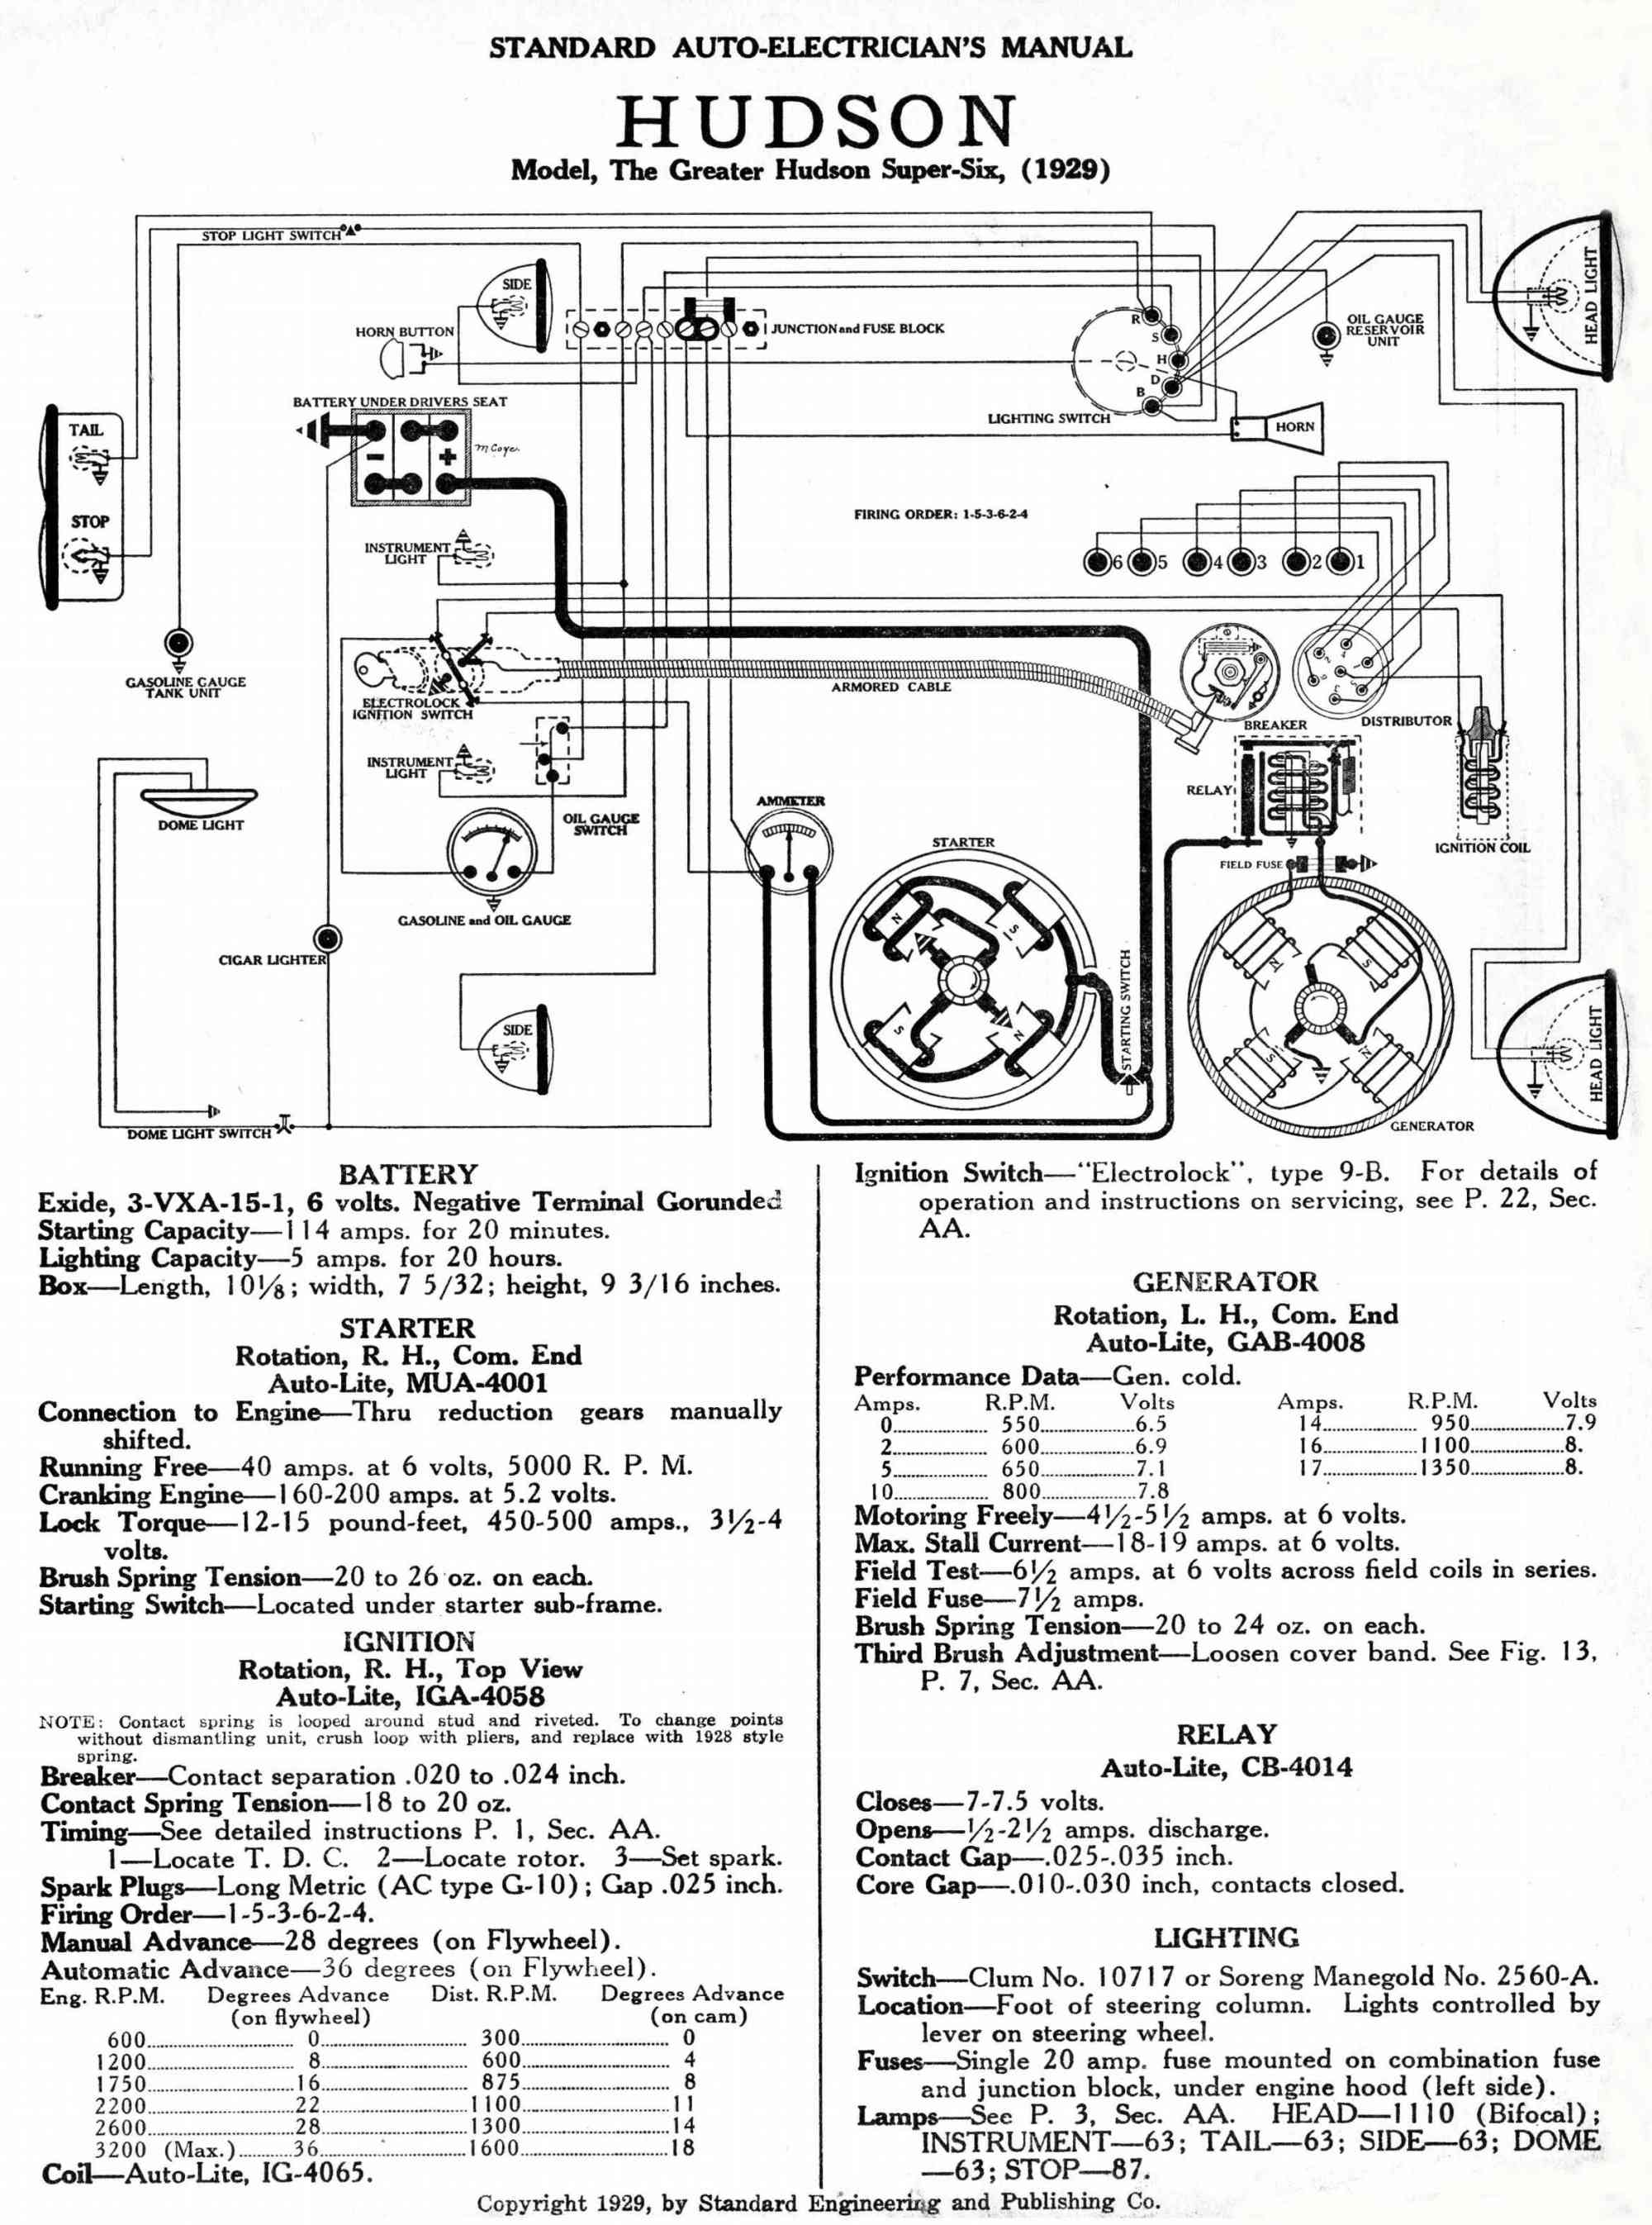 hight resolution of 1954 chrysler wiring diagram wiring diagram1954 chrysler new yorker wiring diagram wiring library1954 chrysler wiring diagram